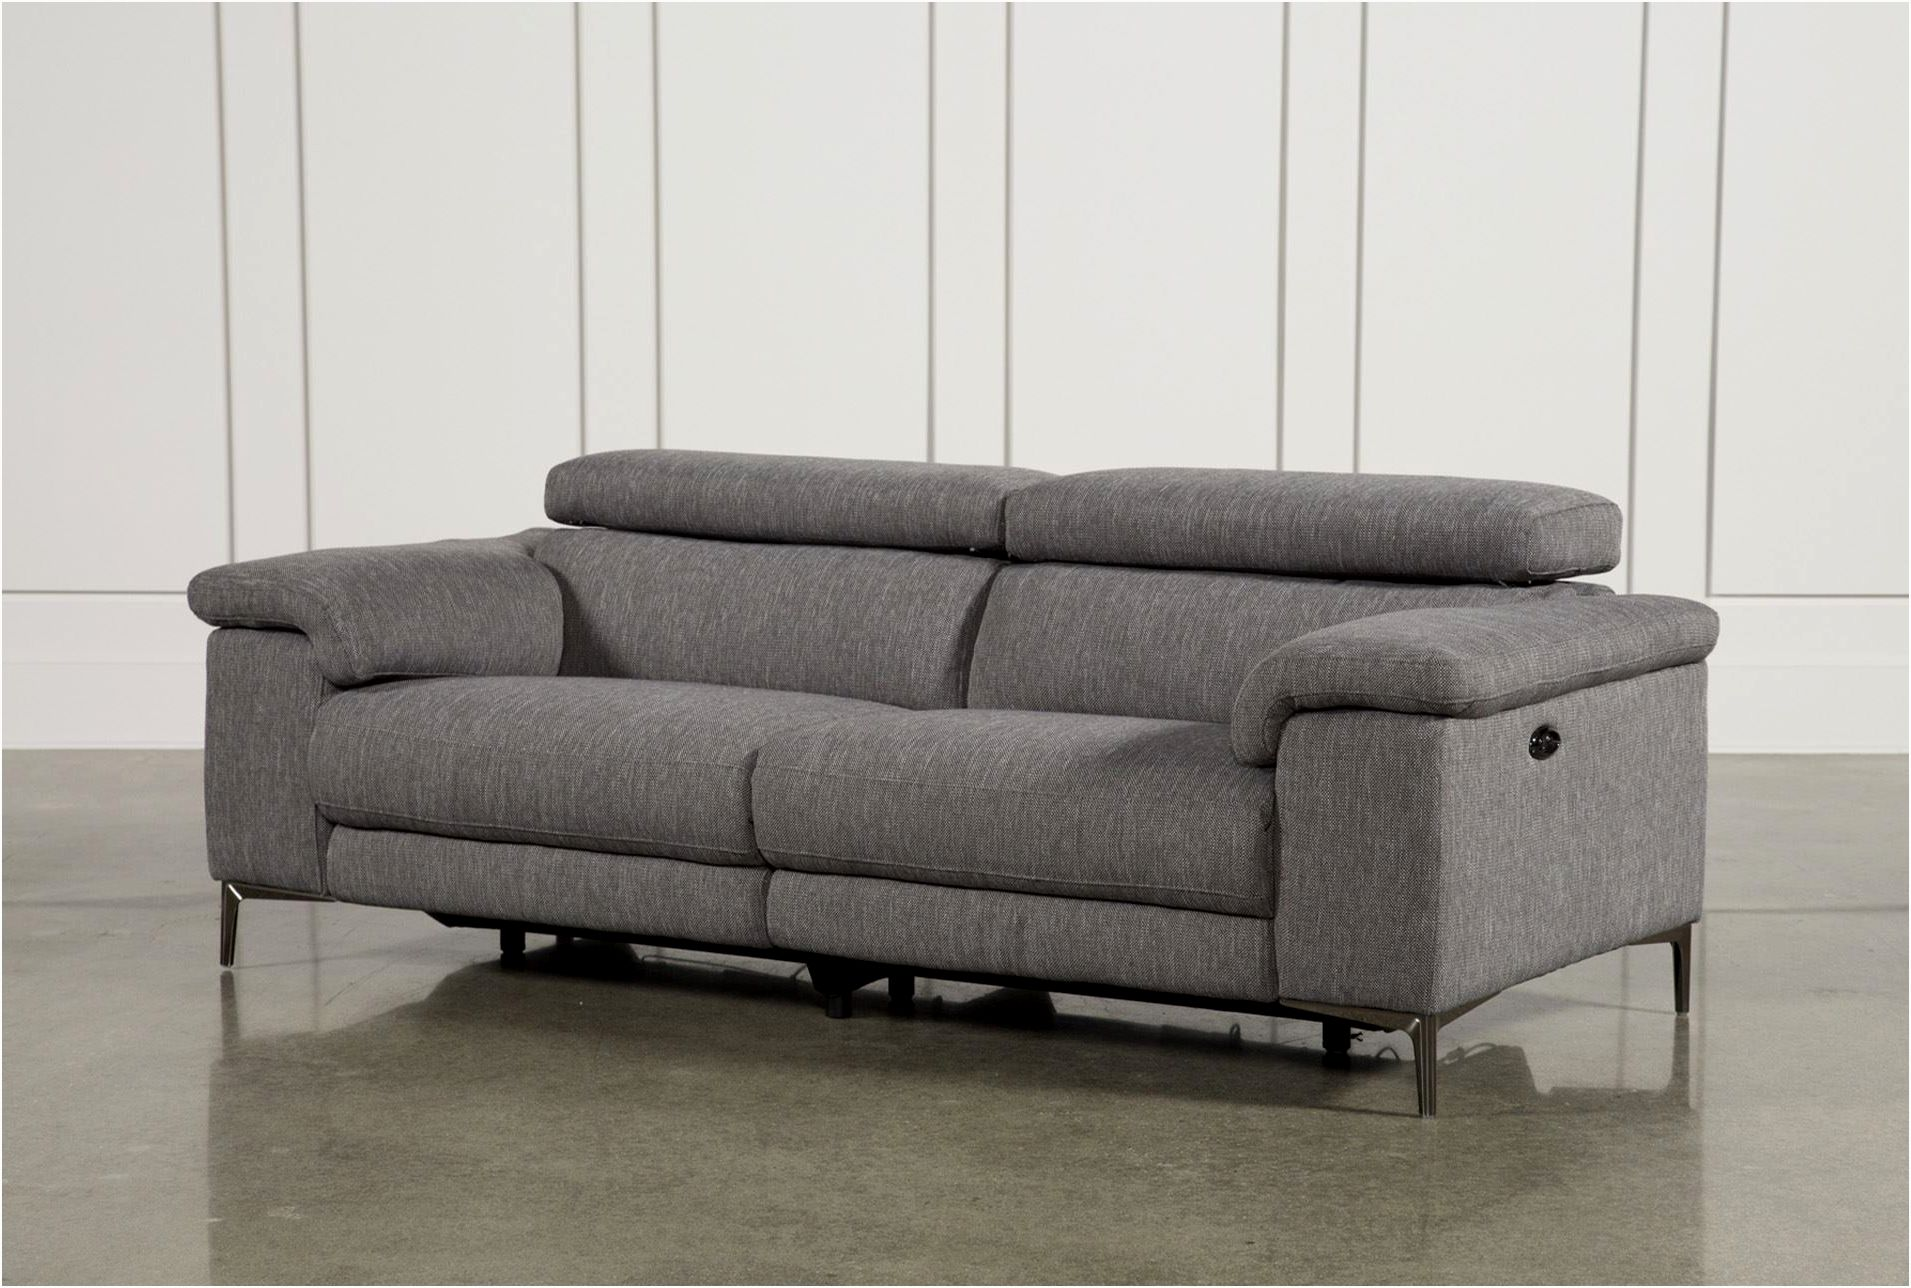 fresh reclining sectional sofa photograph-Terrific Reclining Sectional sofa Picture